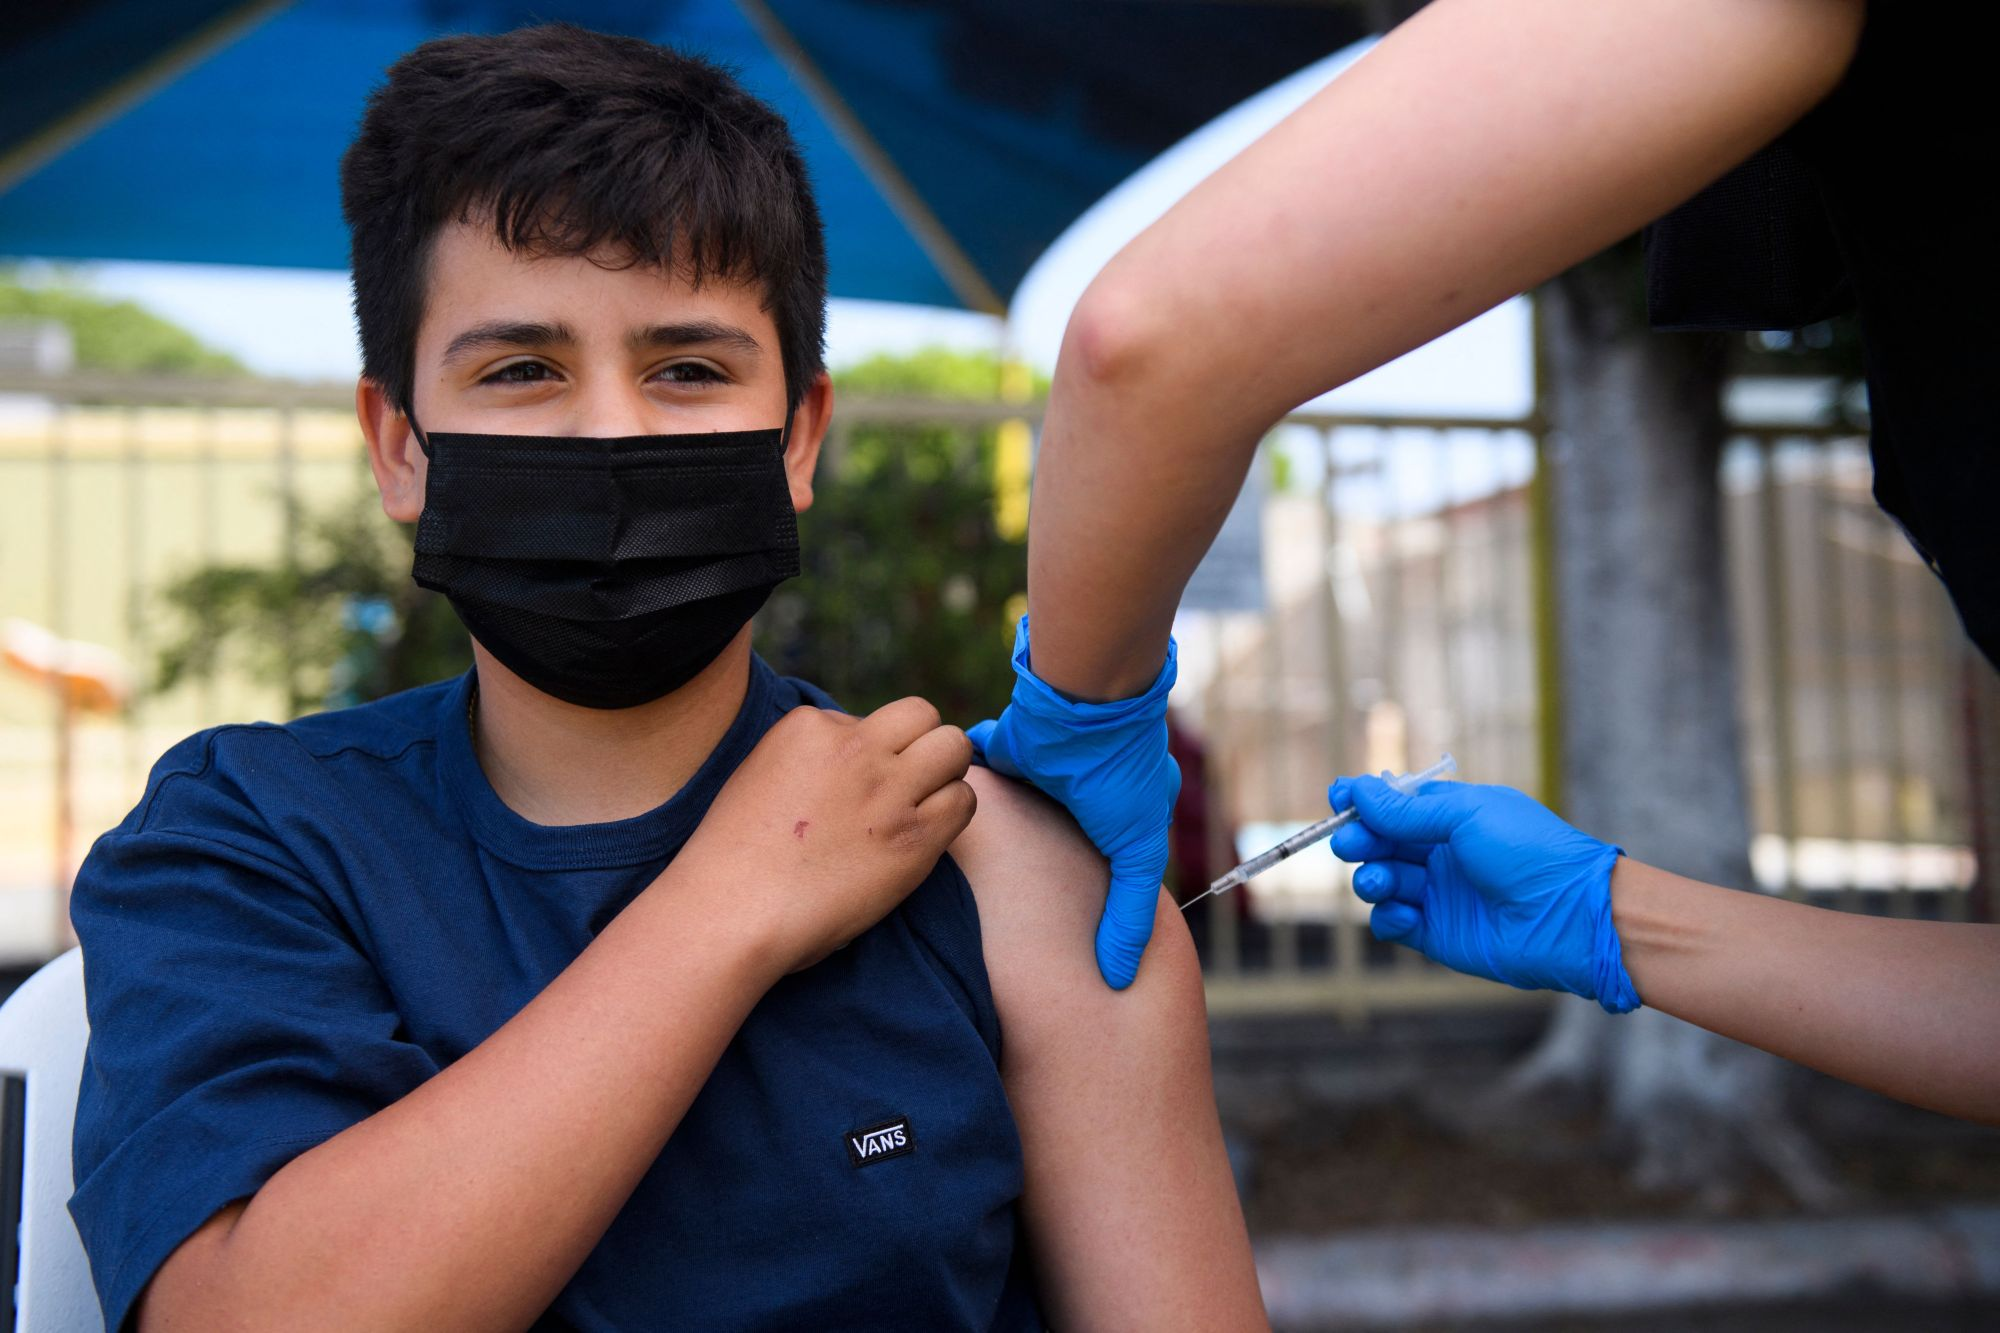 Simon Huizar, 13, receives a first dose of the Pfizer COVID-19 vaccine at a mobile vaccination clinic at the Weingart East Los Angeles YMCA on May 14, 2021, in Los Angeles.